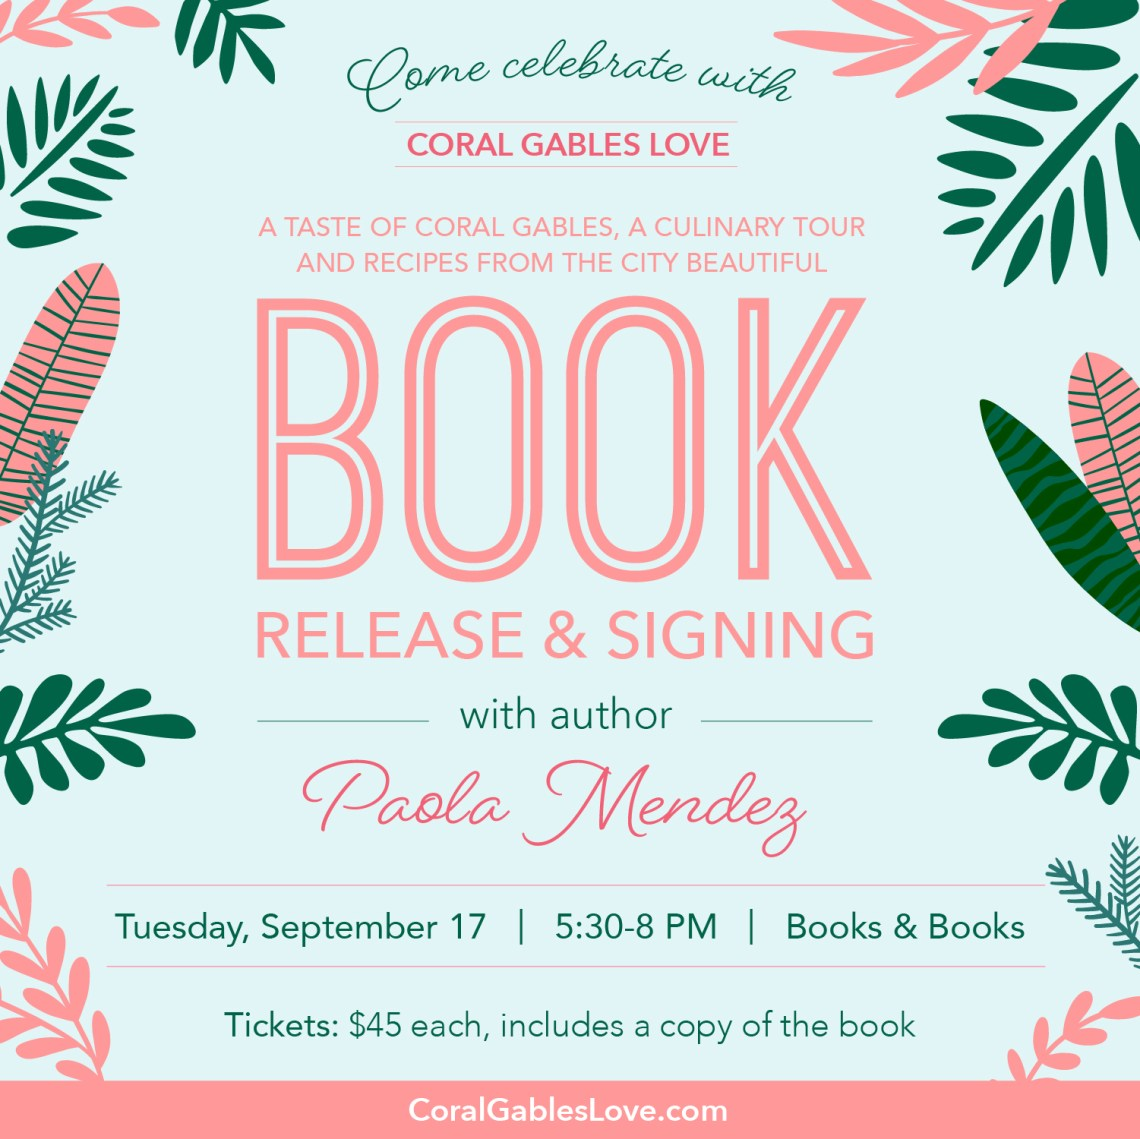 Paola Mendez Book Signing A Taste of Coral Gables